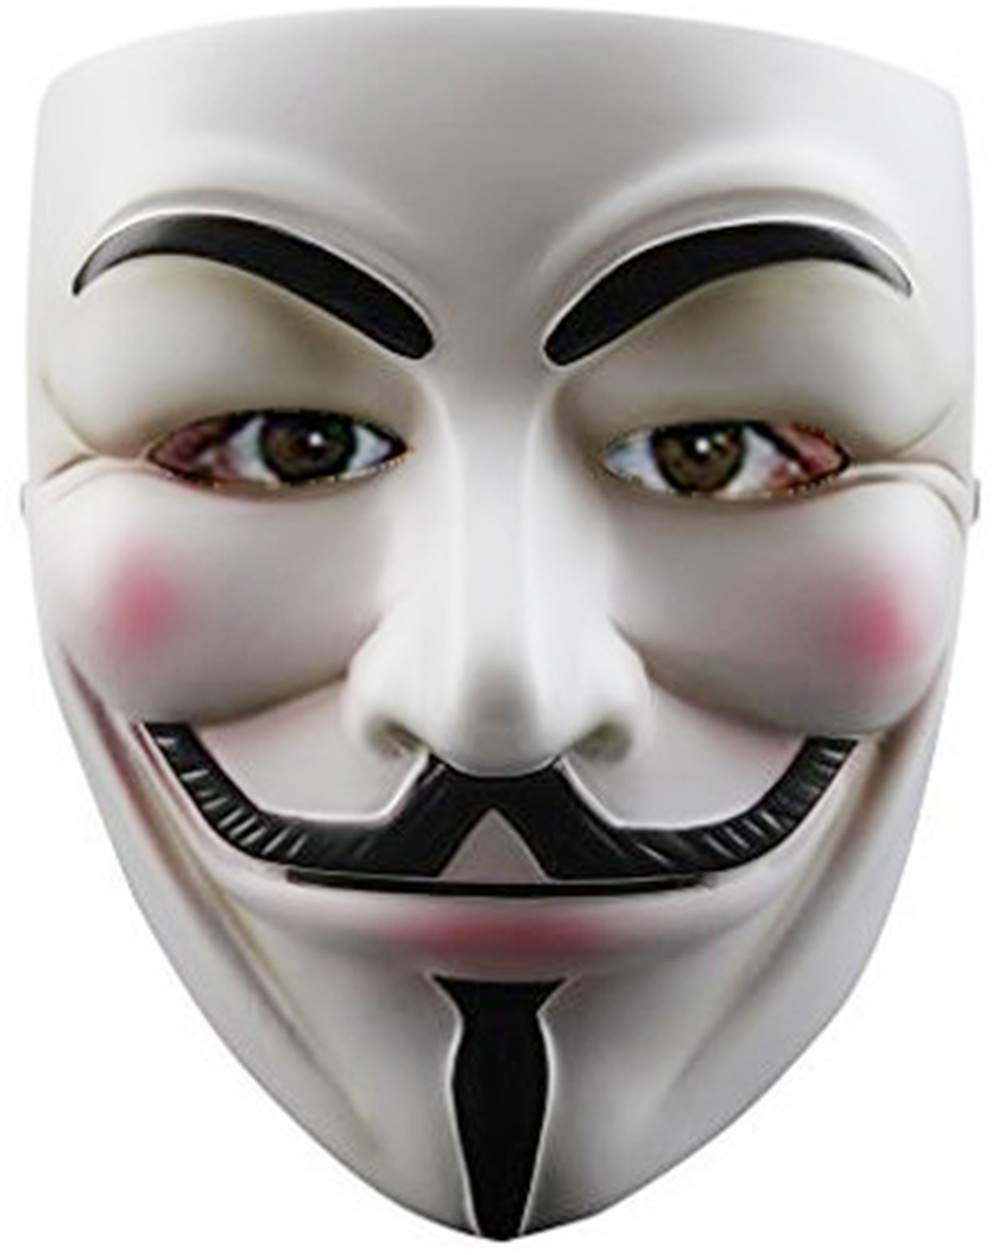 ZLLJH Guy Fawkes Halloween Costume V for Vendetta Mask Anonymous Fancy Cosplay by ZLLJH